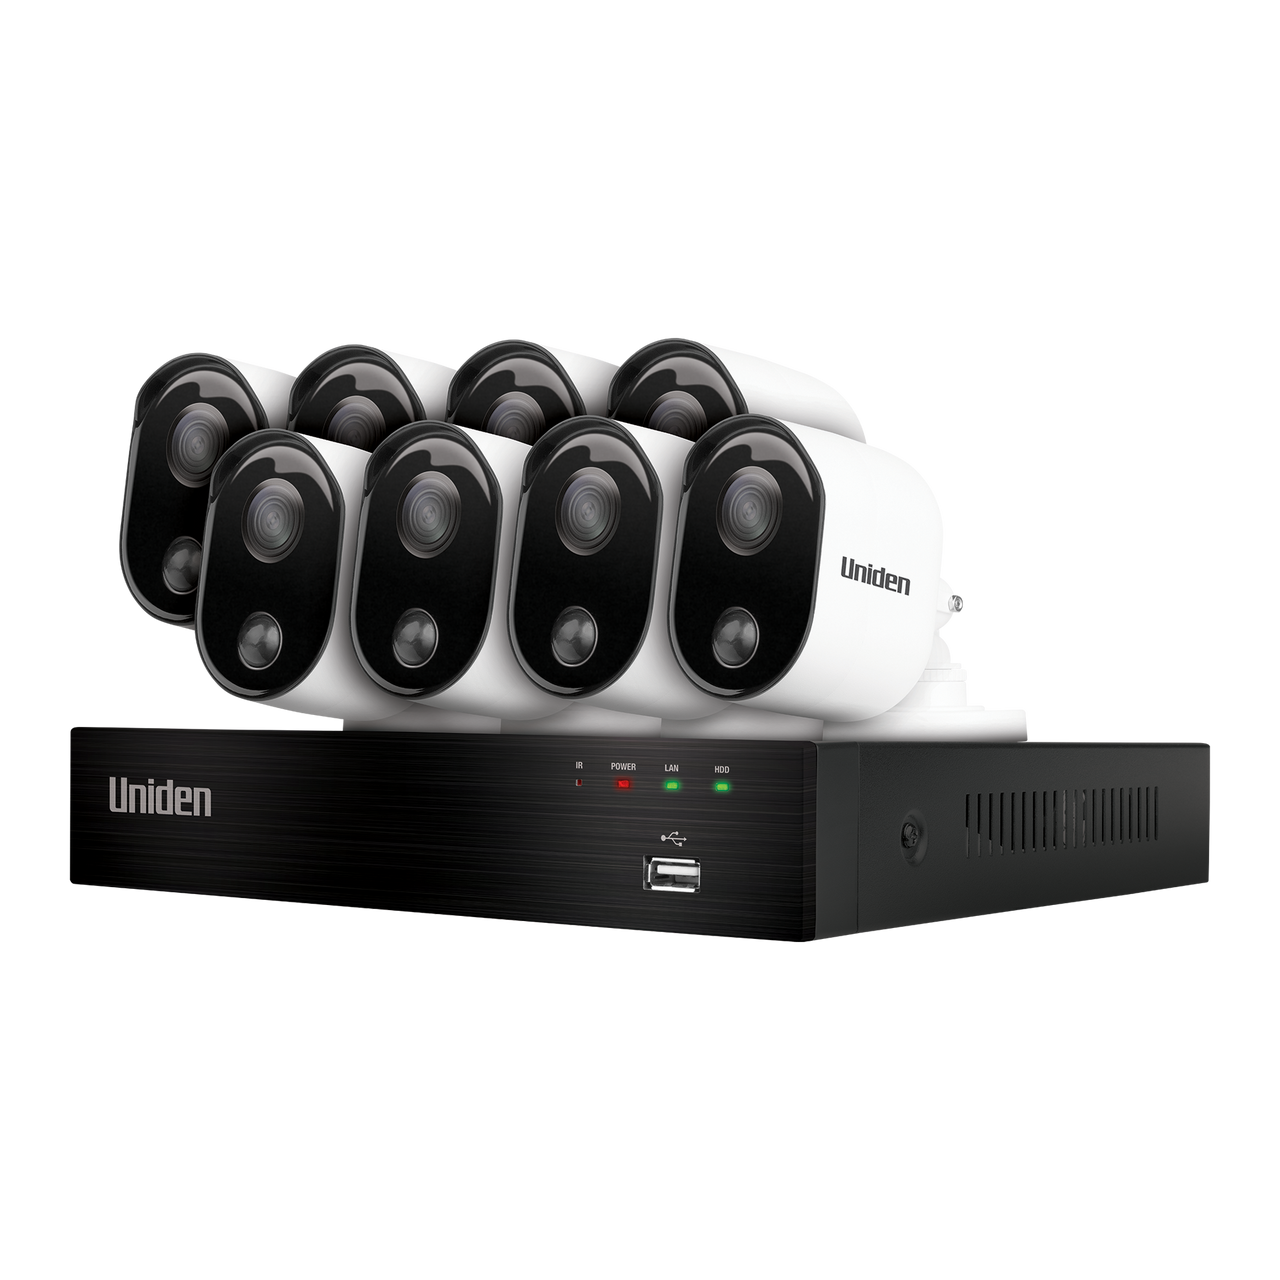 Uniden GDVR20880 Guardian 1TB Full HD 8 Camera Thermal Sensing Weatherproof CCTV System